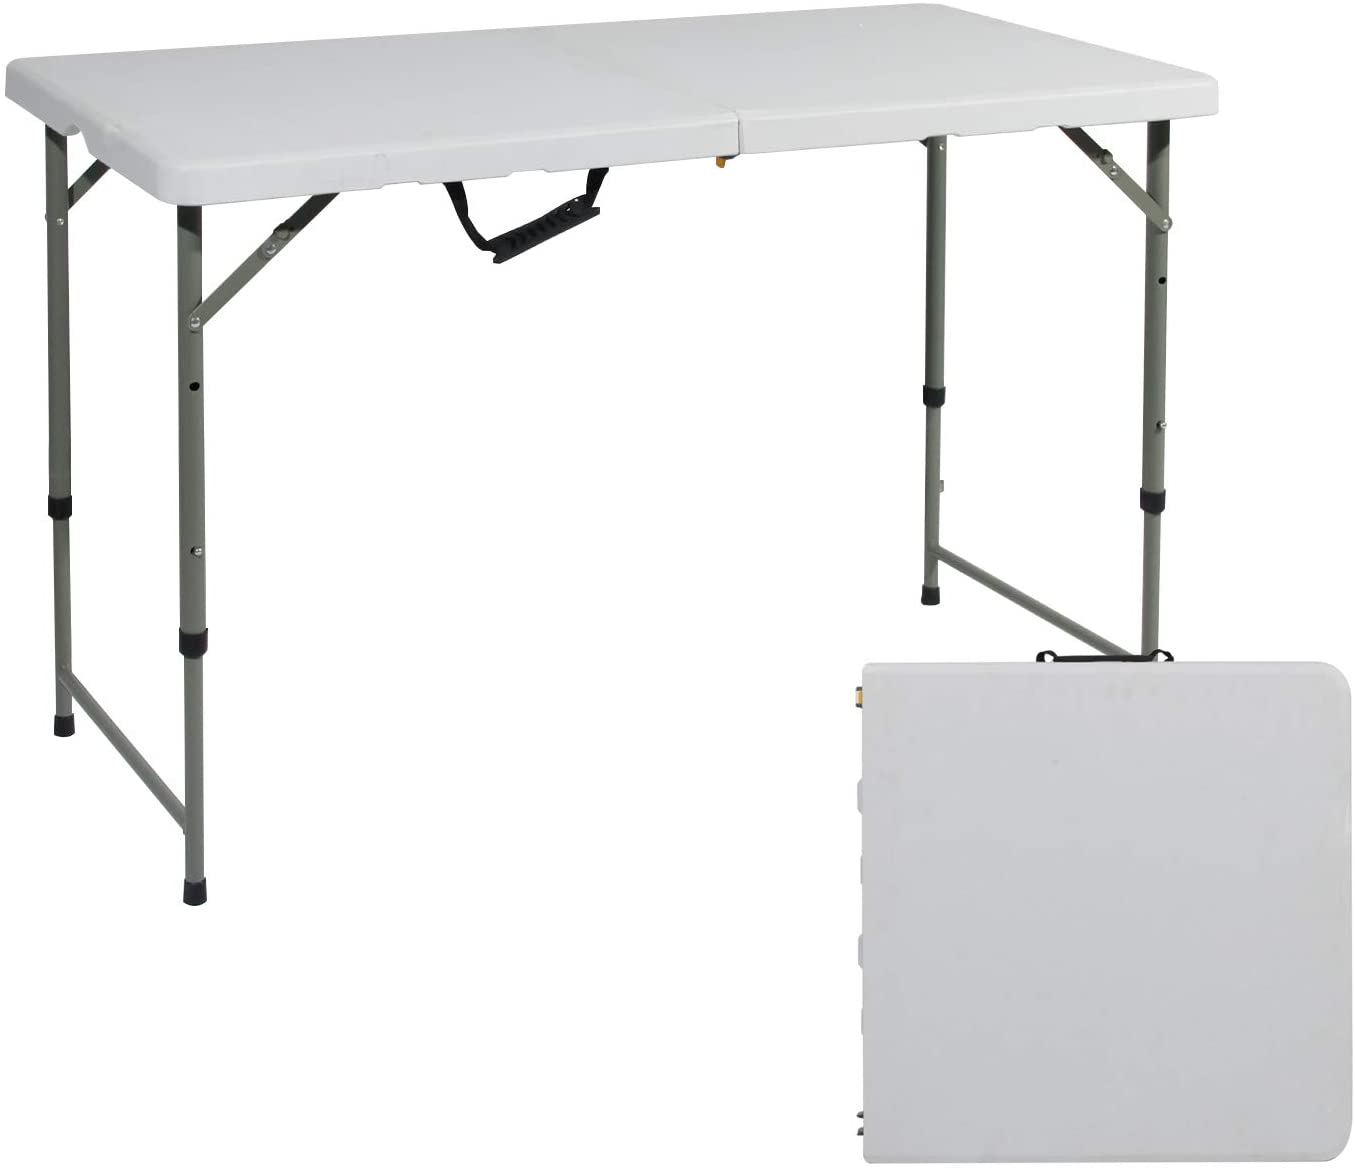 soges Portable Folding Table Camping Buffet Table Wedding table Garden table Party Table,HP-122-1